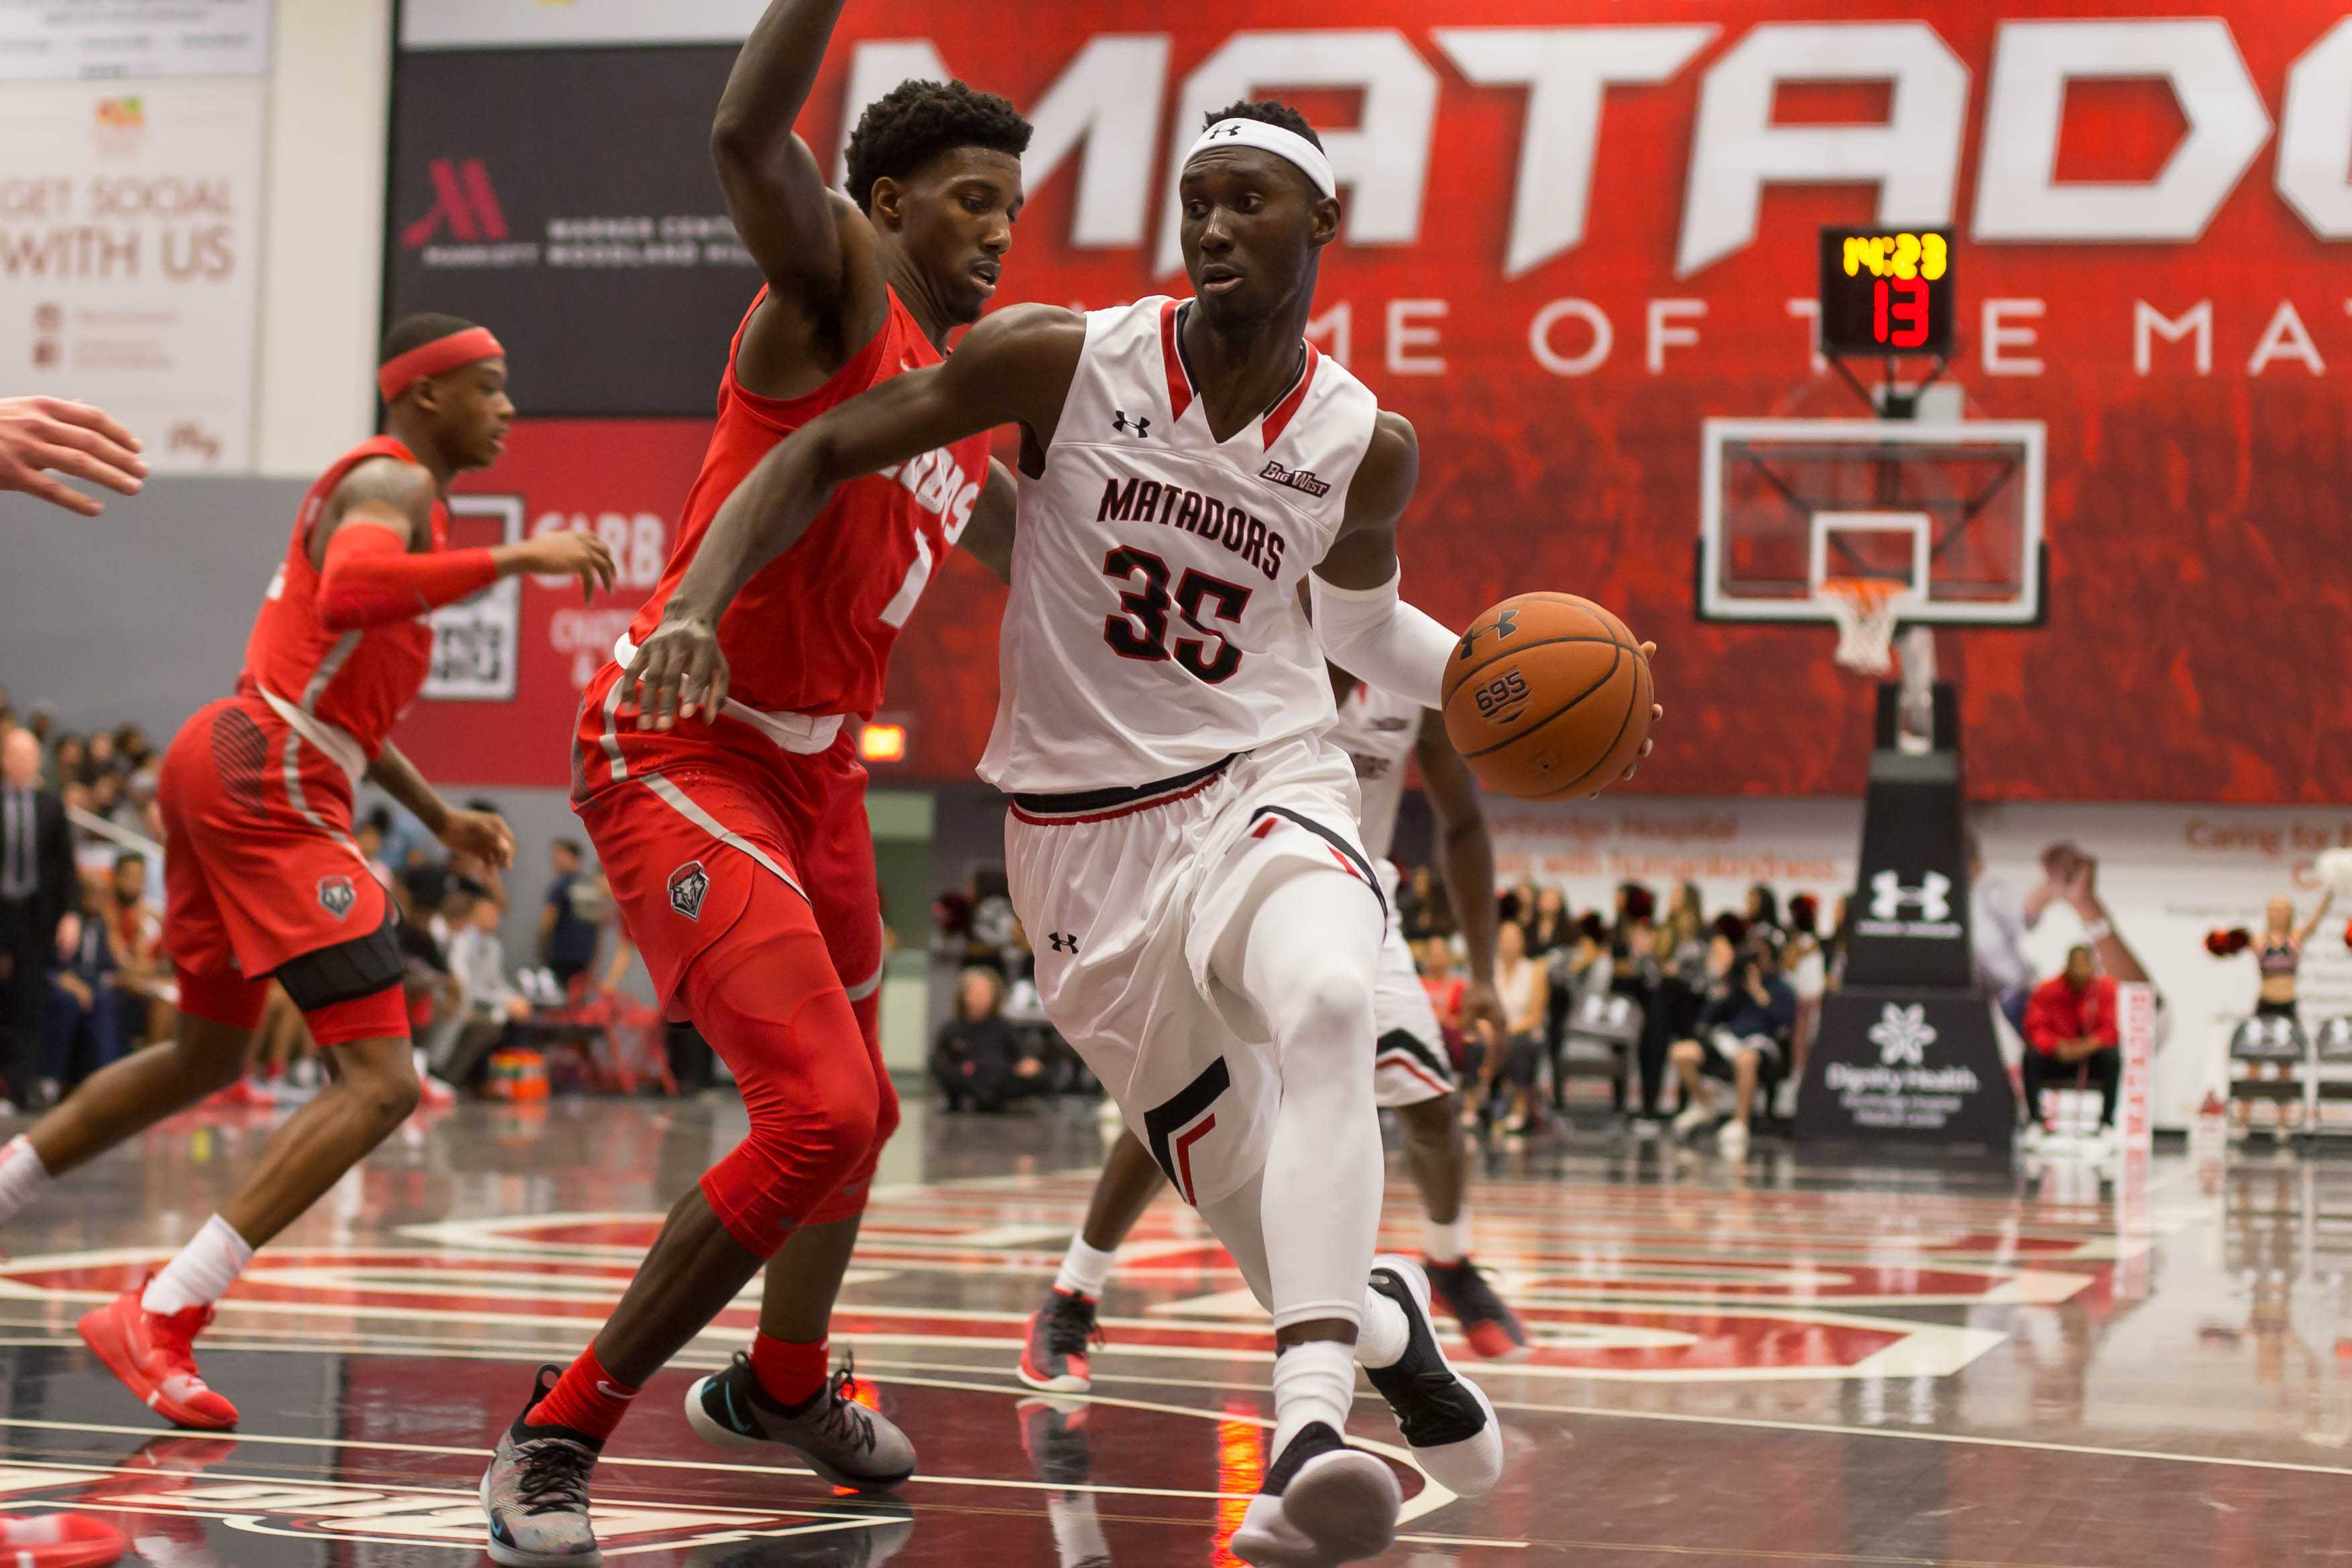 A CSUN Men's basketball player trying to get passed over the defender and score